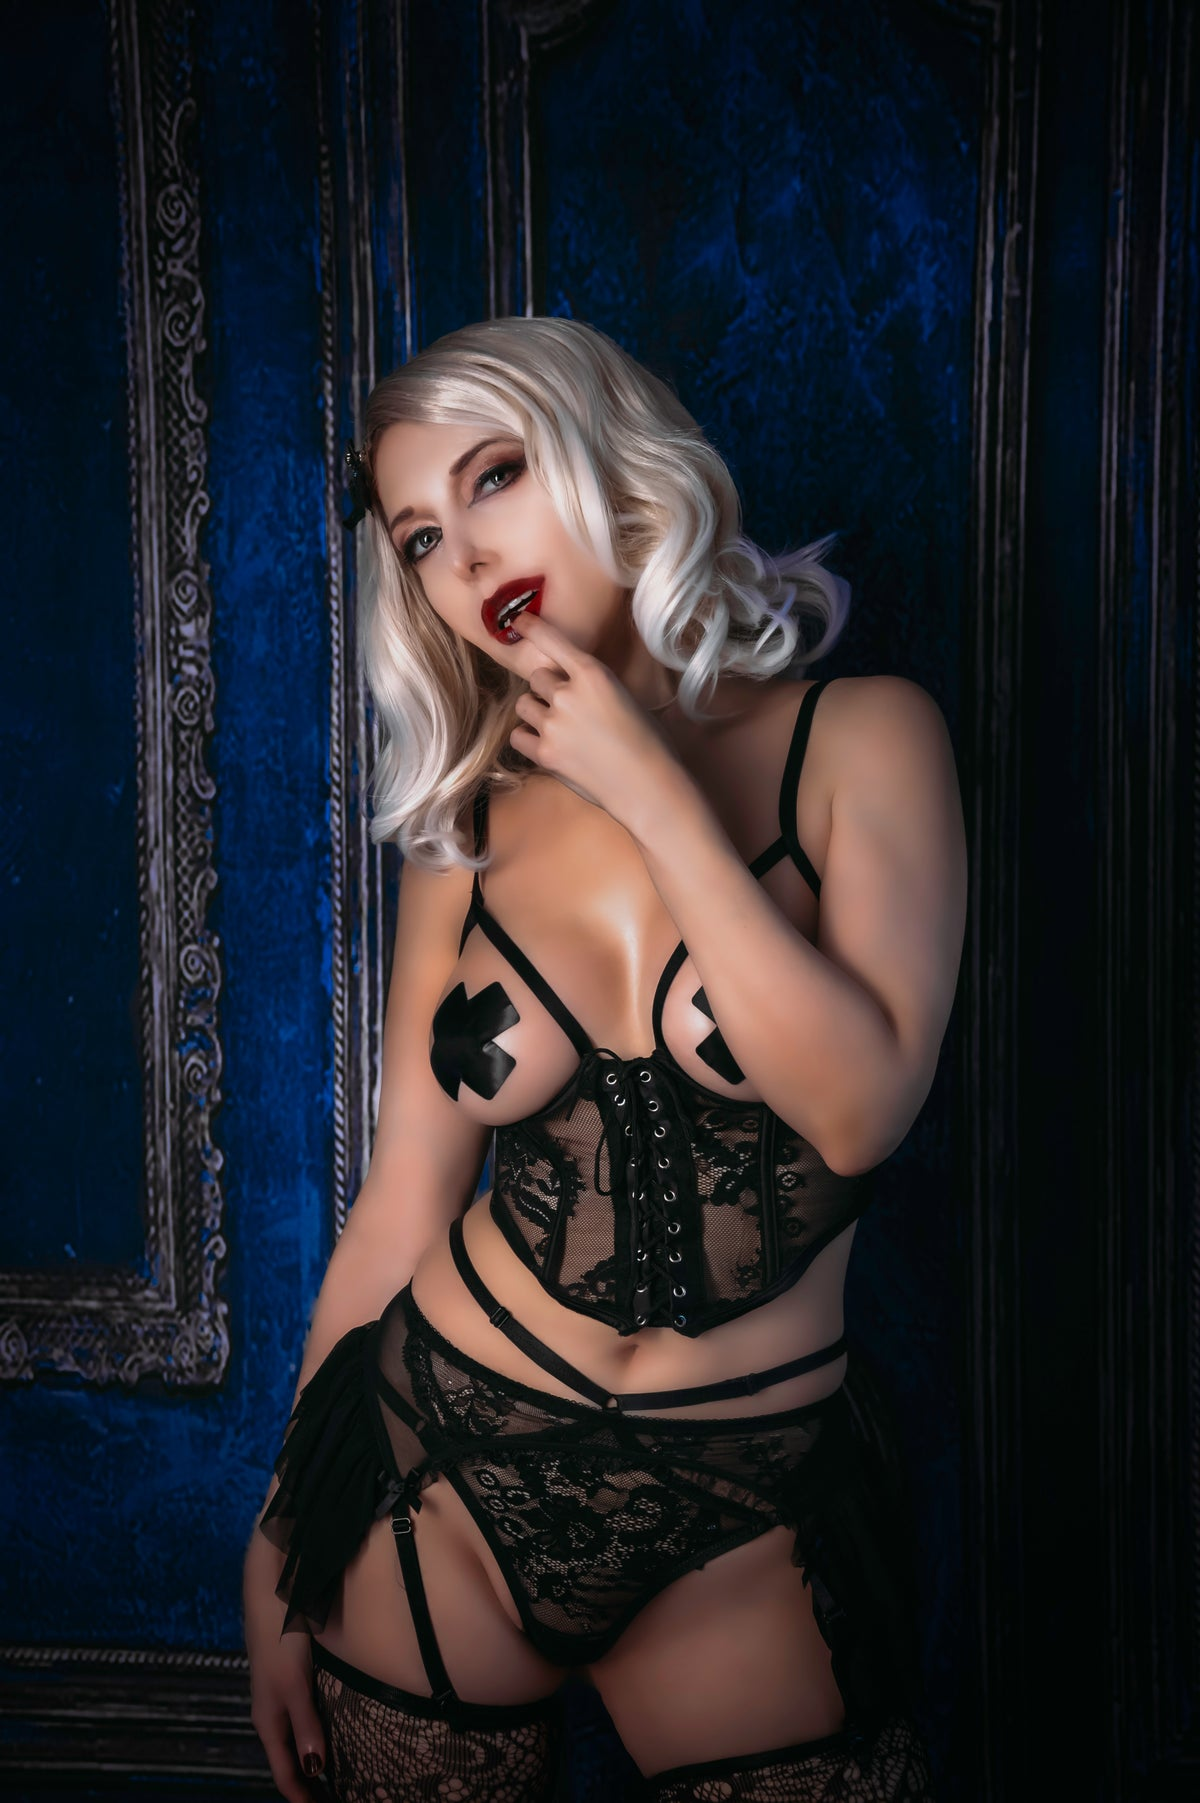 Image of Black Lace Bombshell shoot with implied